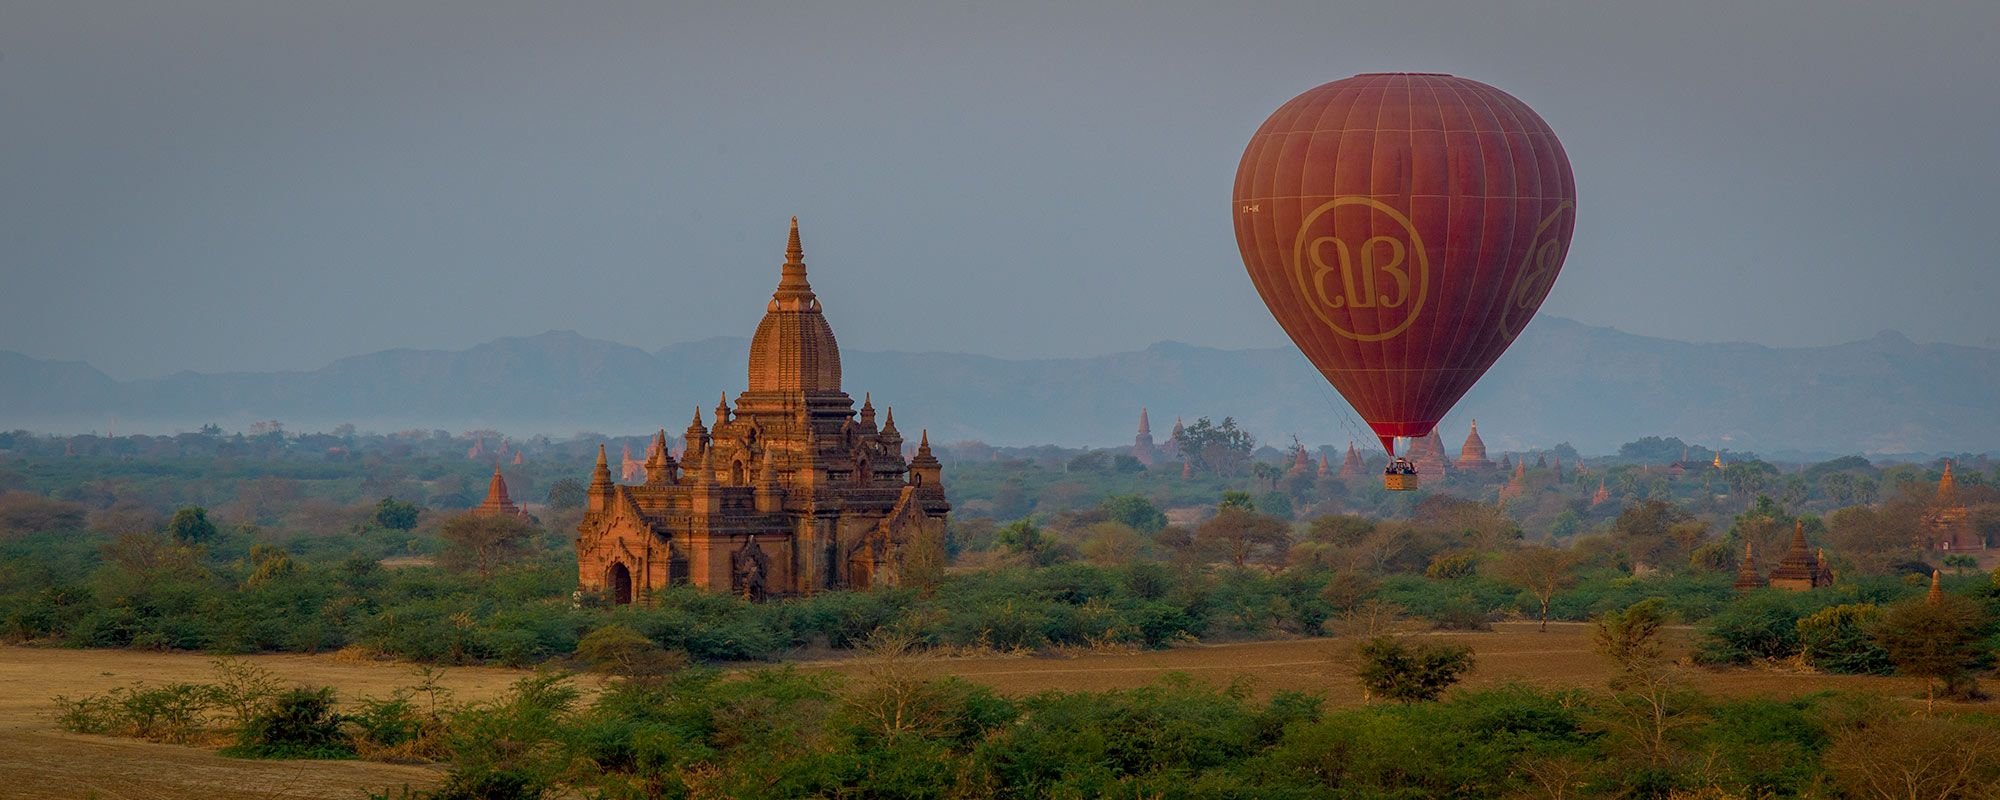 balloon over the baghan plain in Myanmar